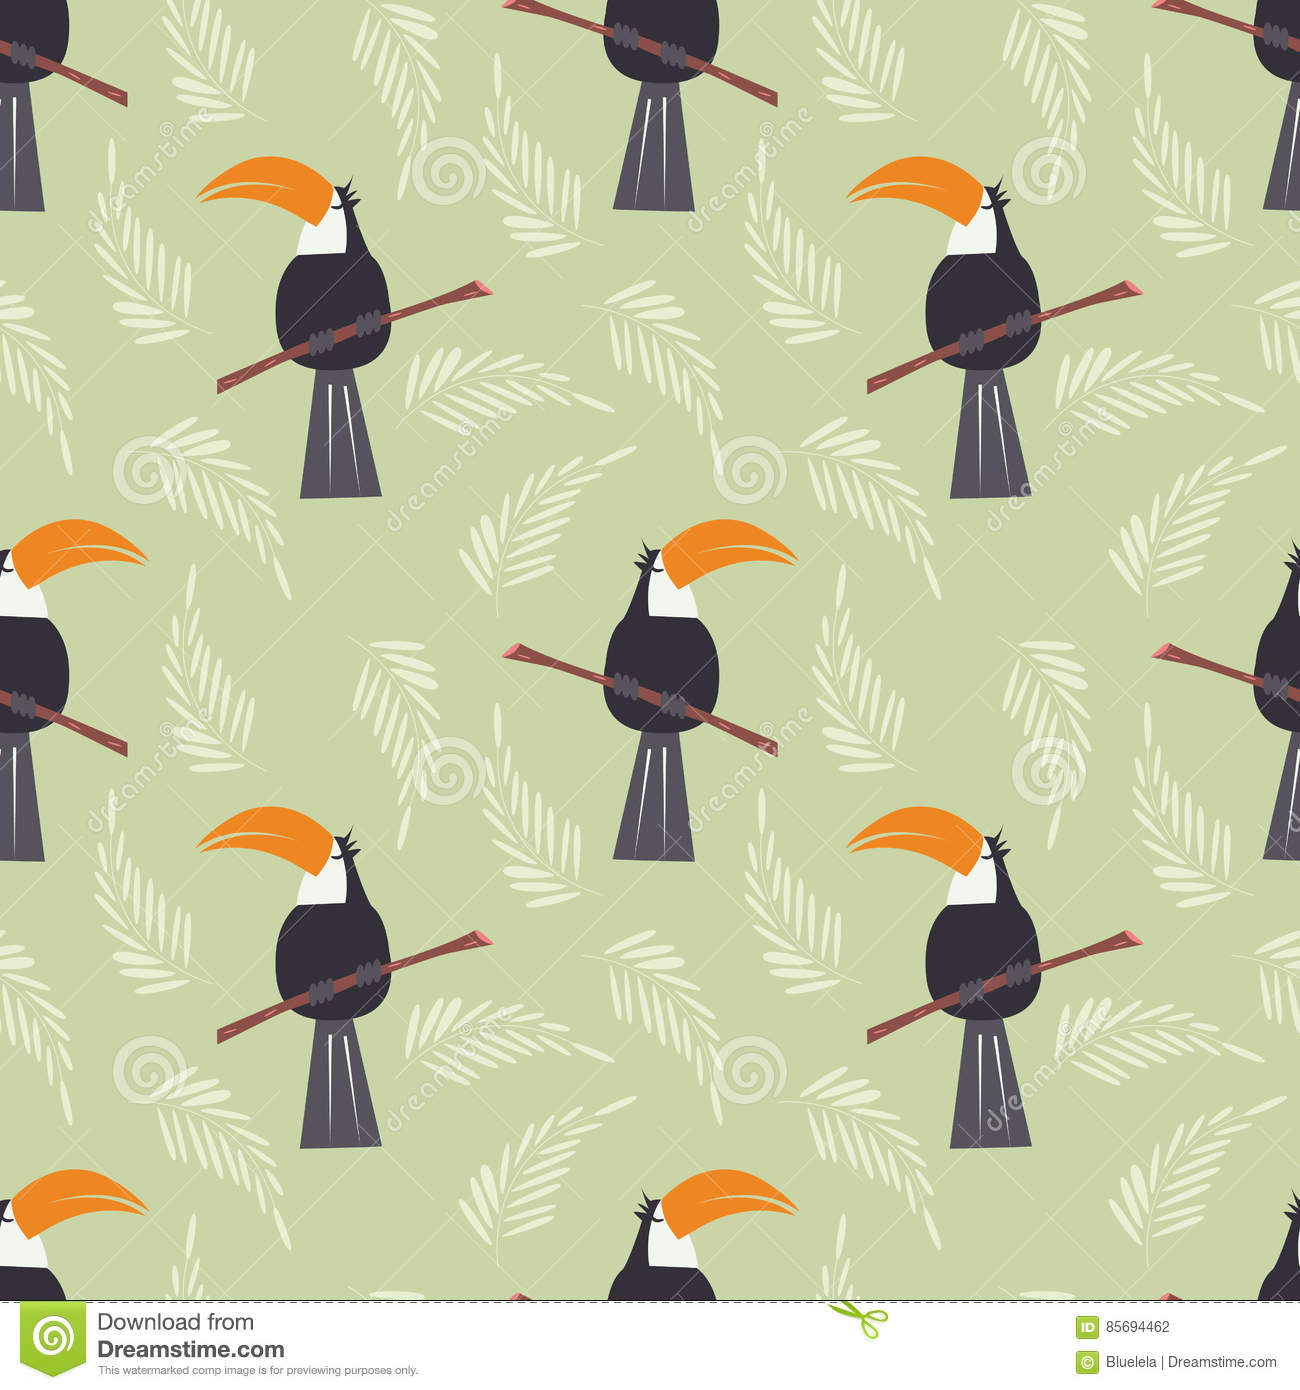 Seamless pattern with cute jungle parrot toucan on green